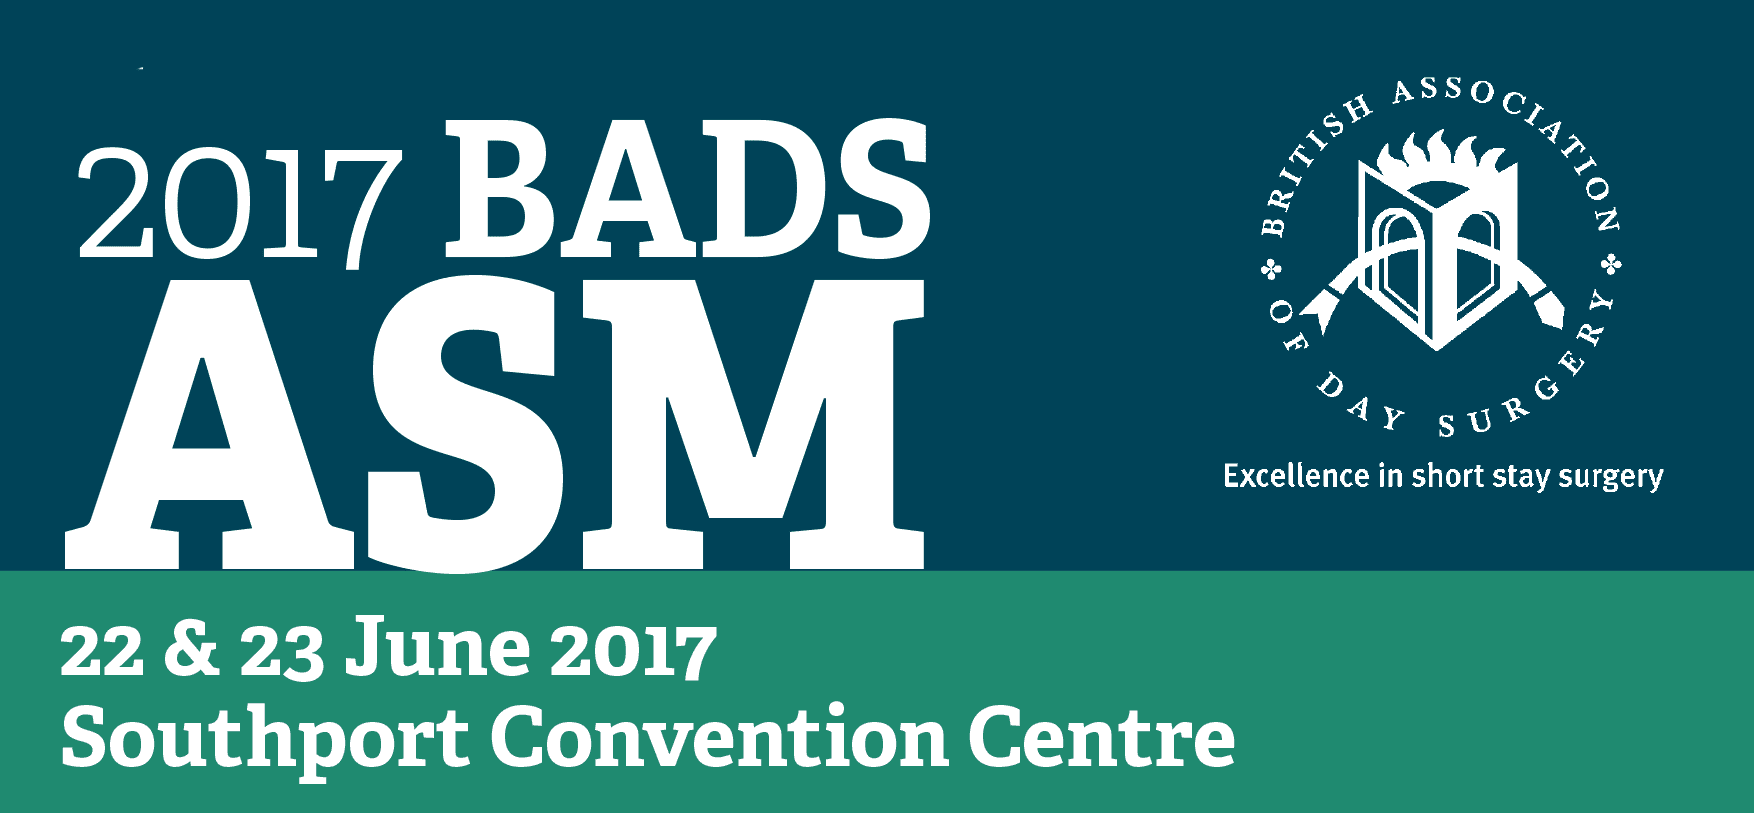 We're exhibiting at BADS 2017!